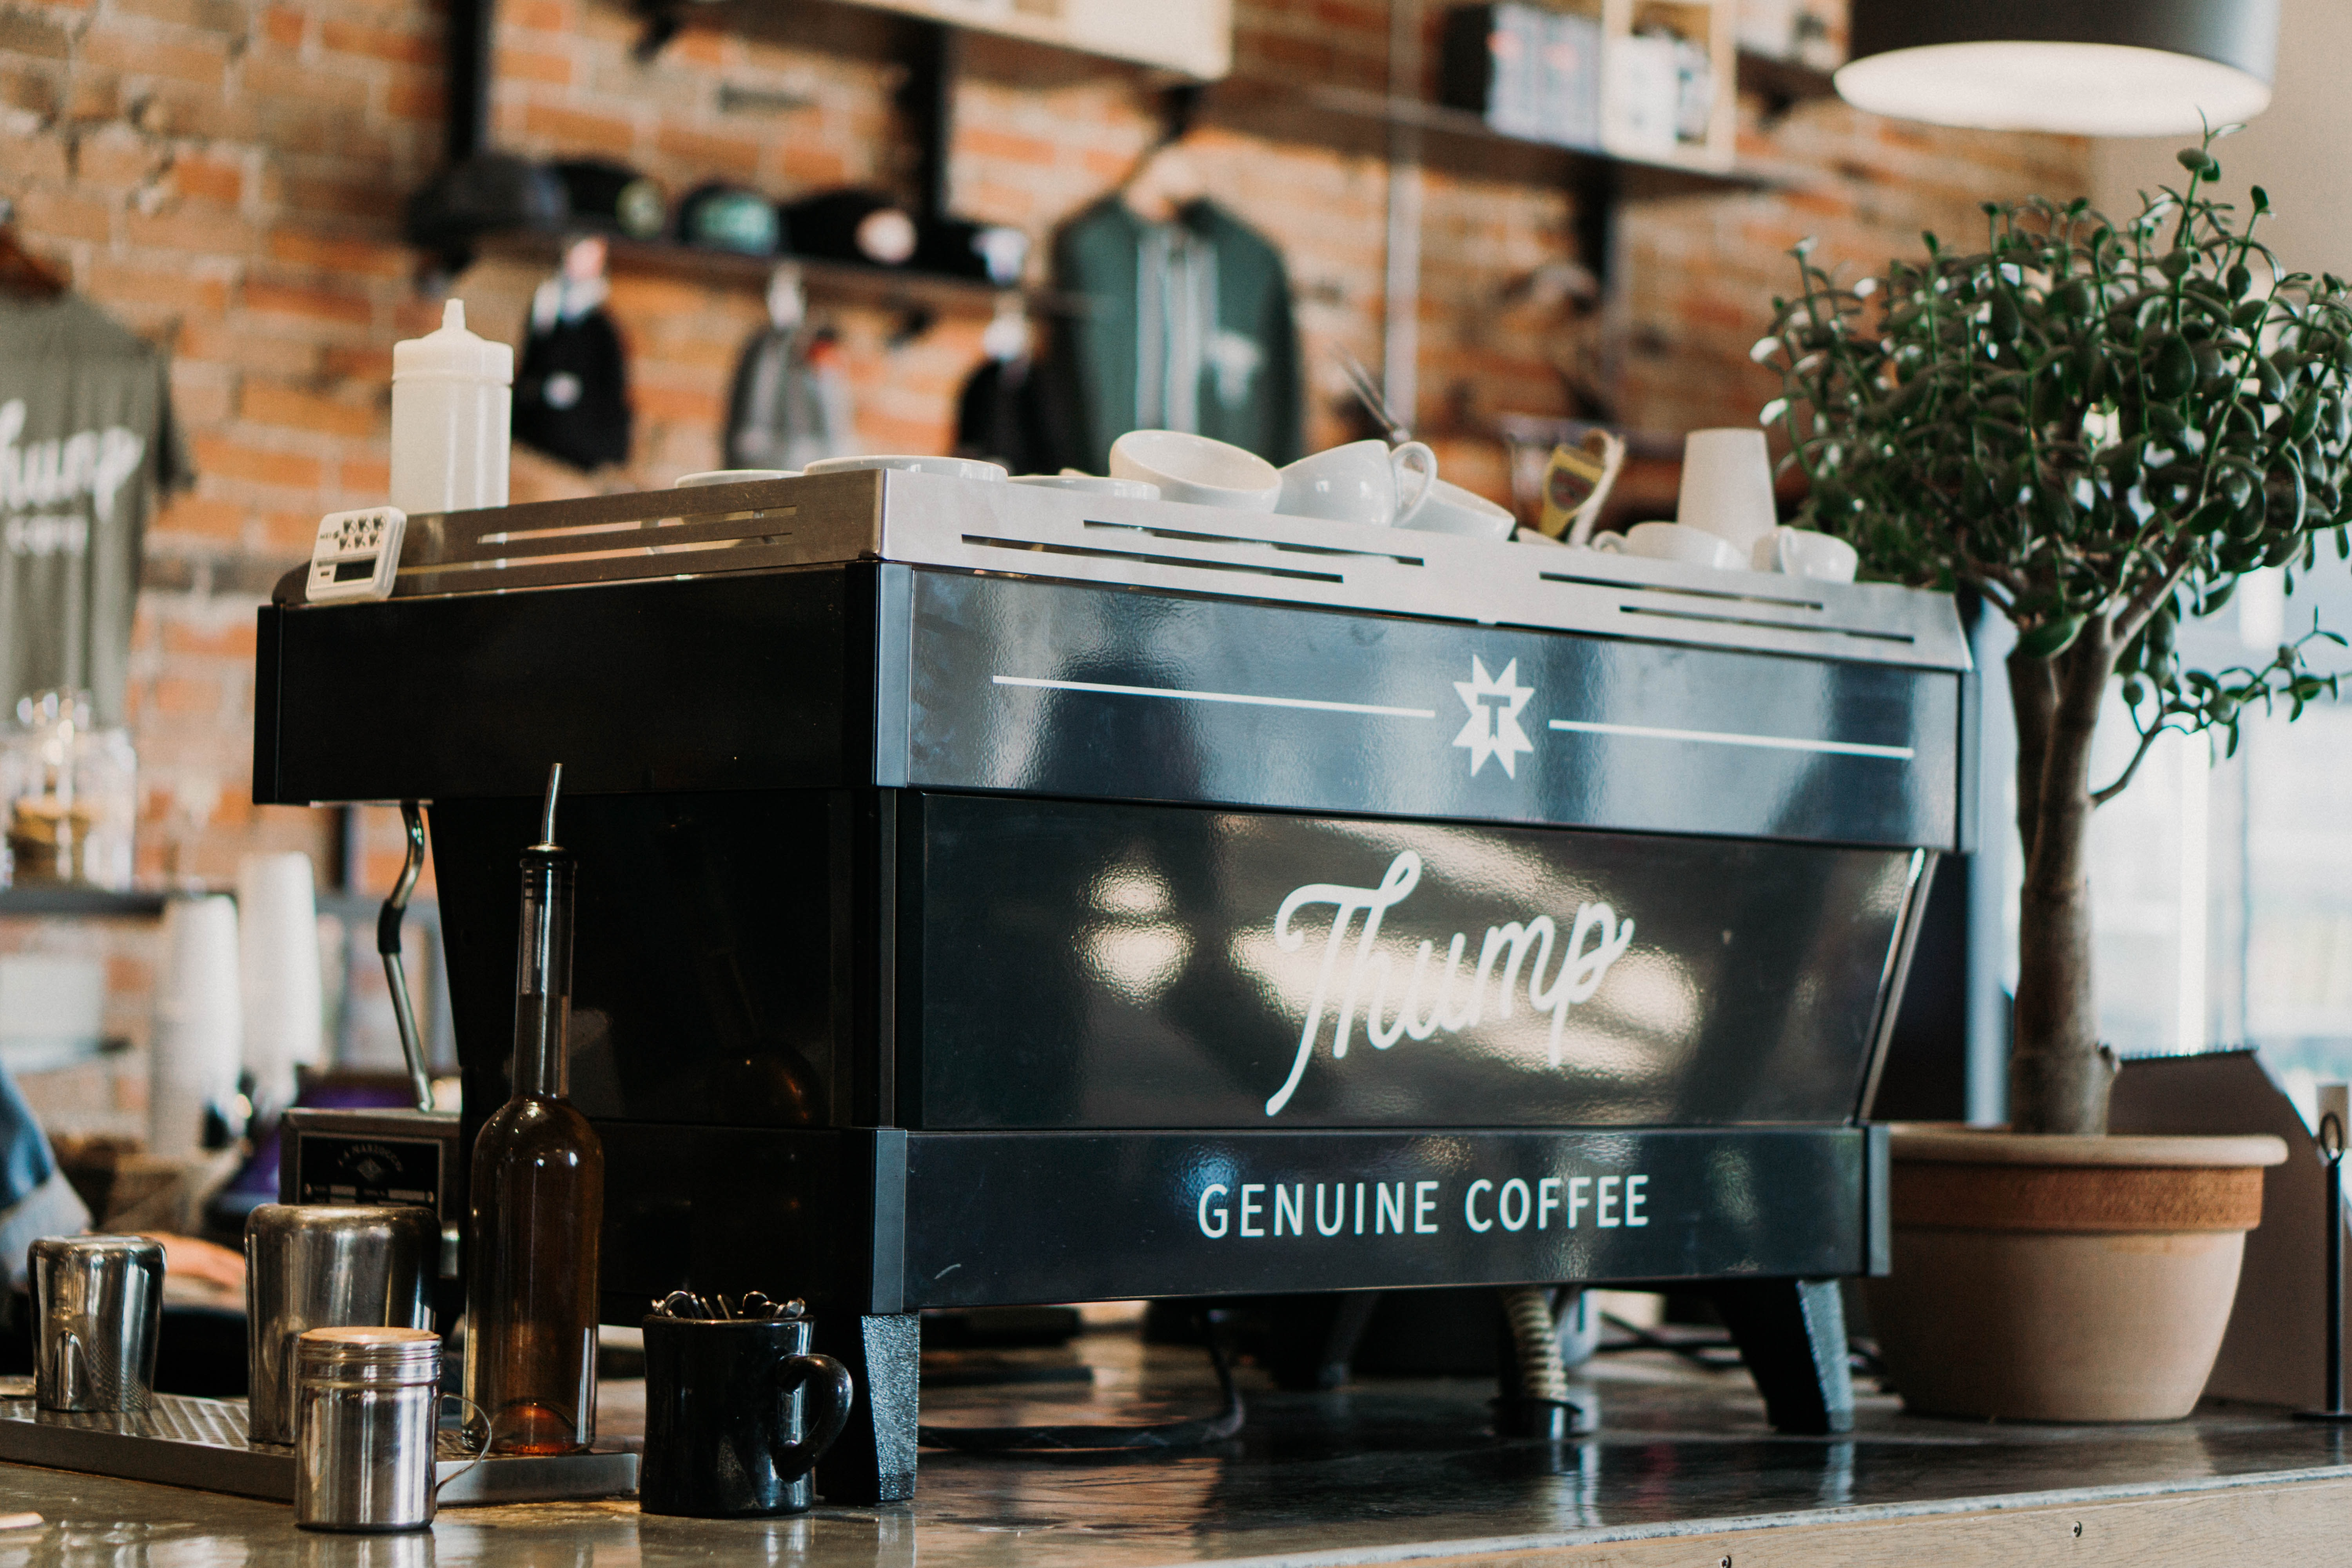 photography of Thump genuine coffee espresso machine